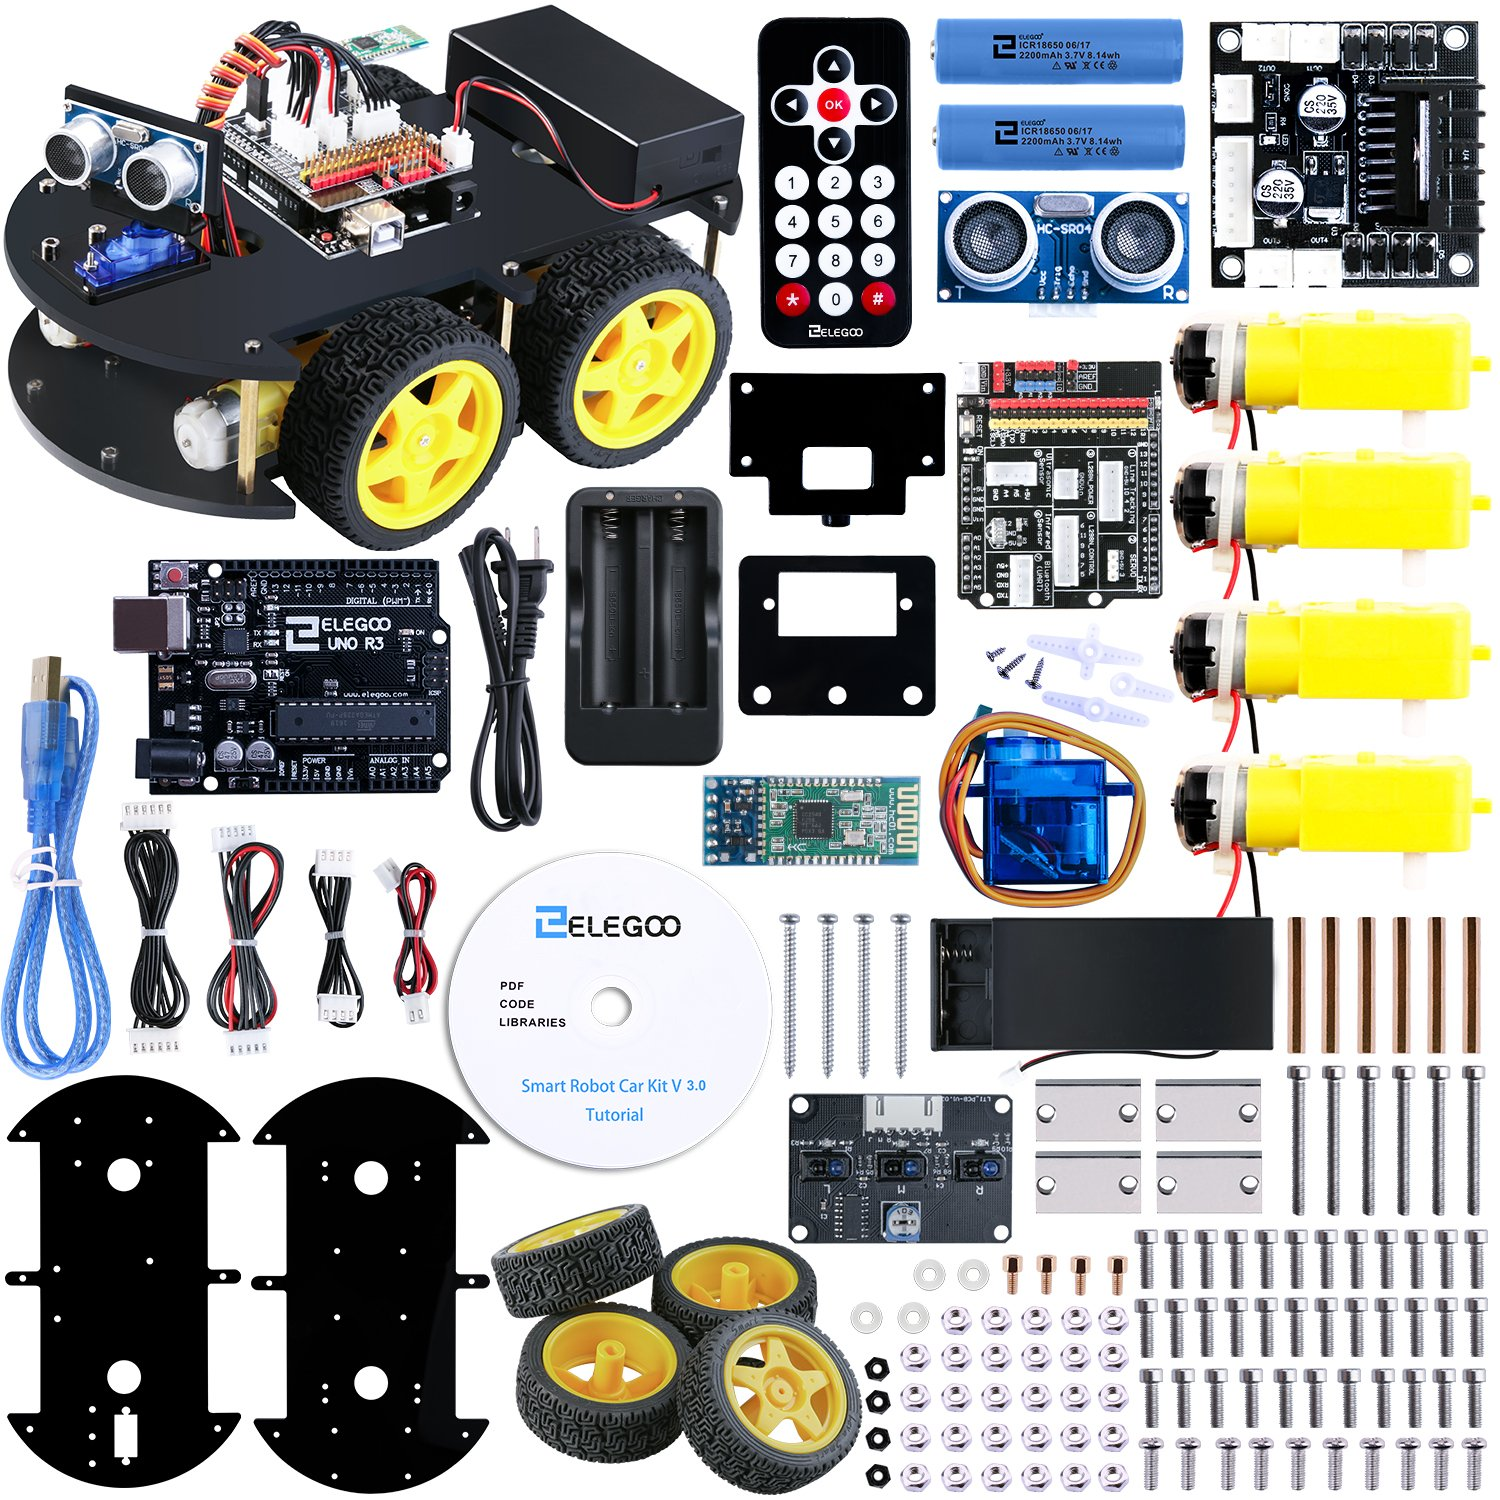 ELEGOO UNO R3 Project Smart Robot Car Kit V 3 0 with UNO R3, Line Tracking  Module, Ultrasonic Sensor, IR Remote Control Module etc  Intelligent and